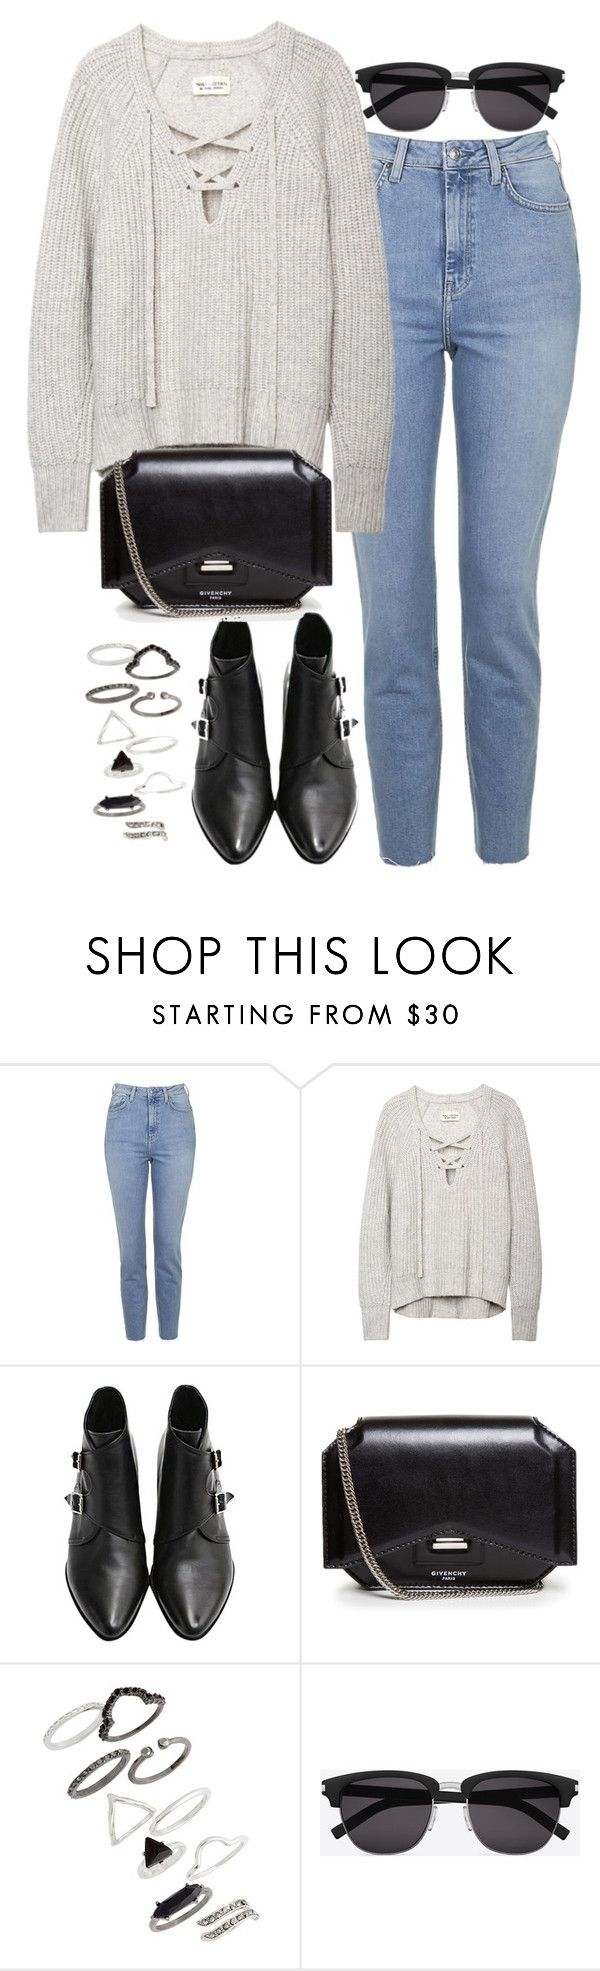 """""""Untitled #626"""" by weyheytati ❤ liked on Polyvore featuring мода, Topshop, Givenchy и Yves Saint Laurent"""